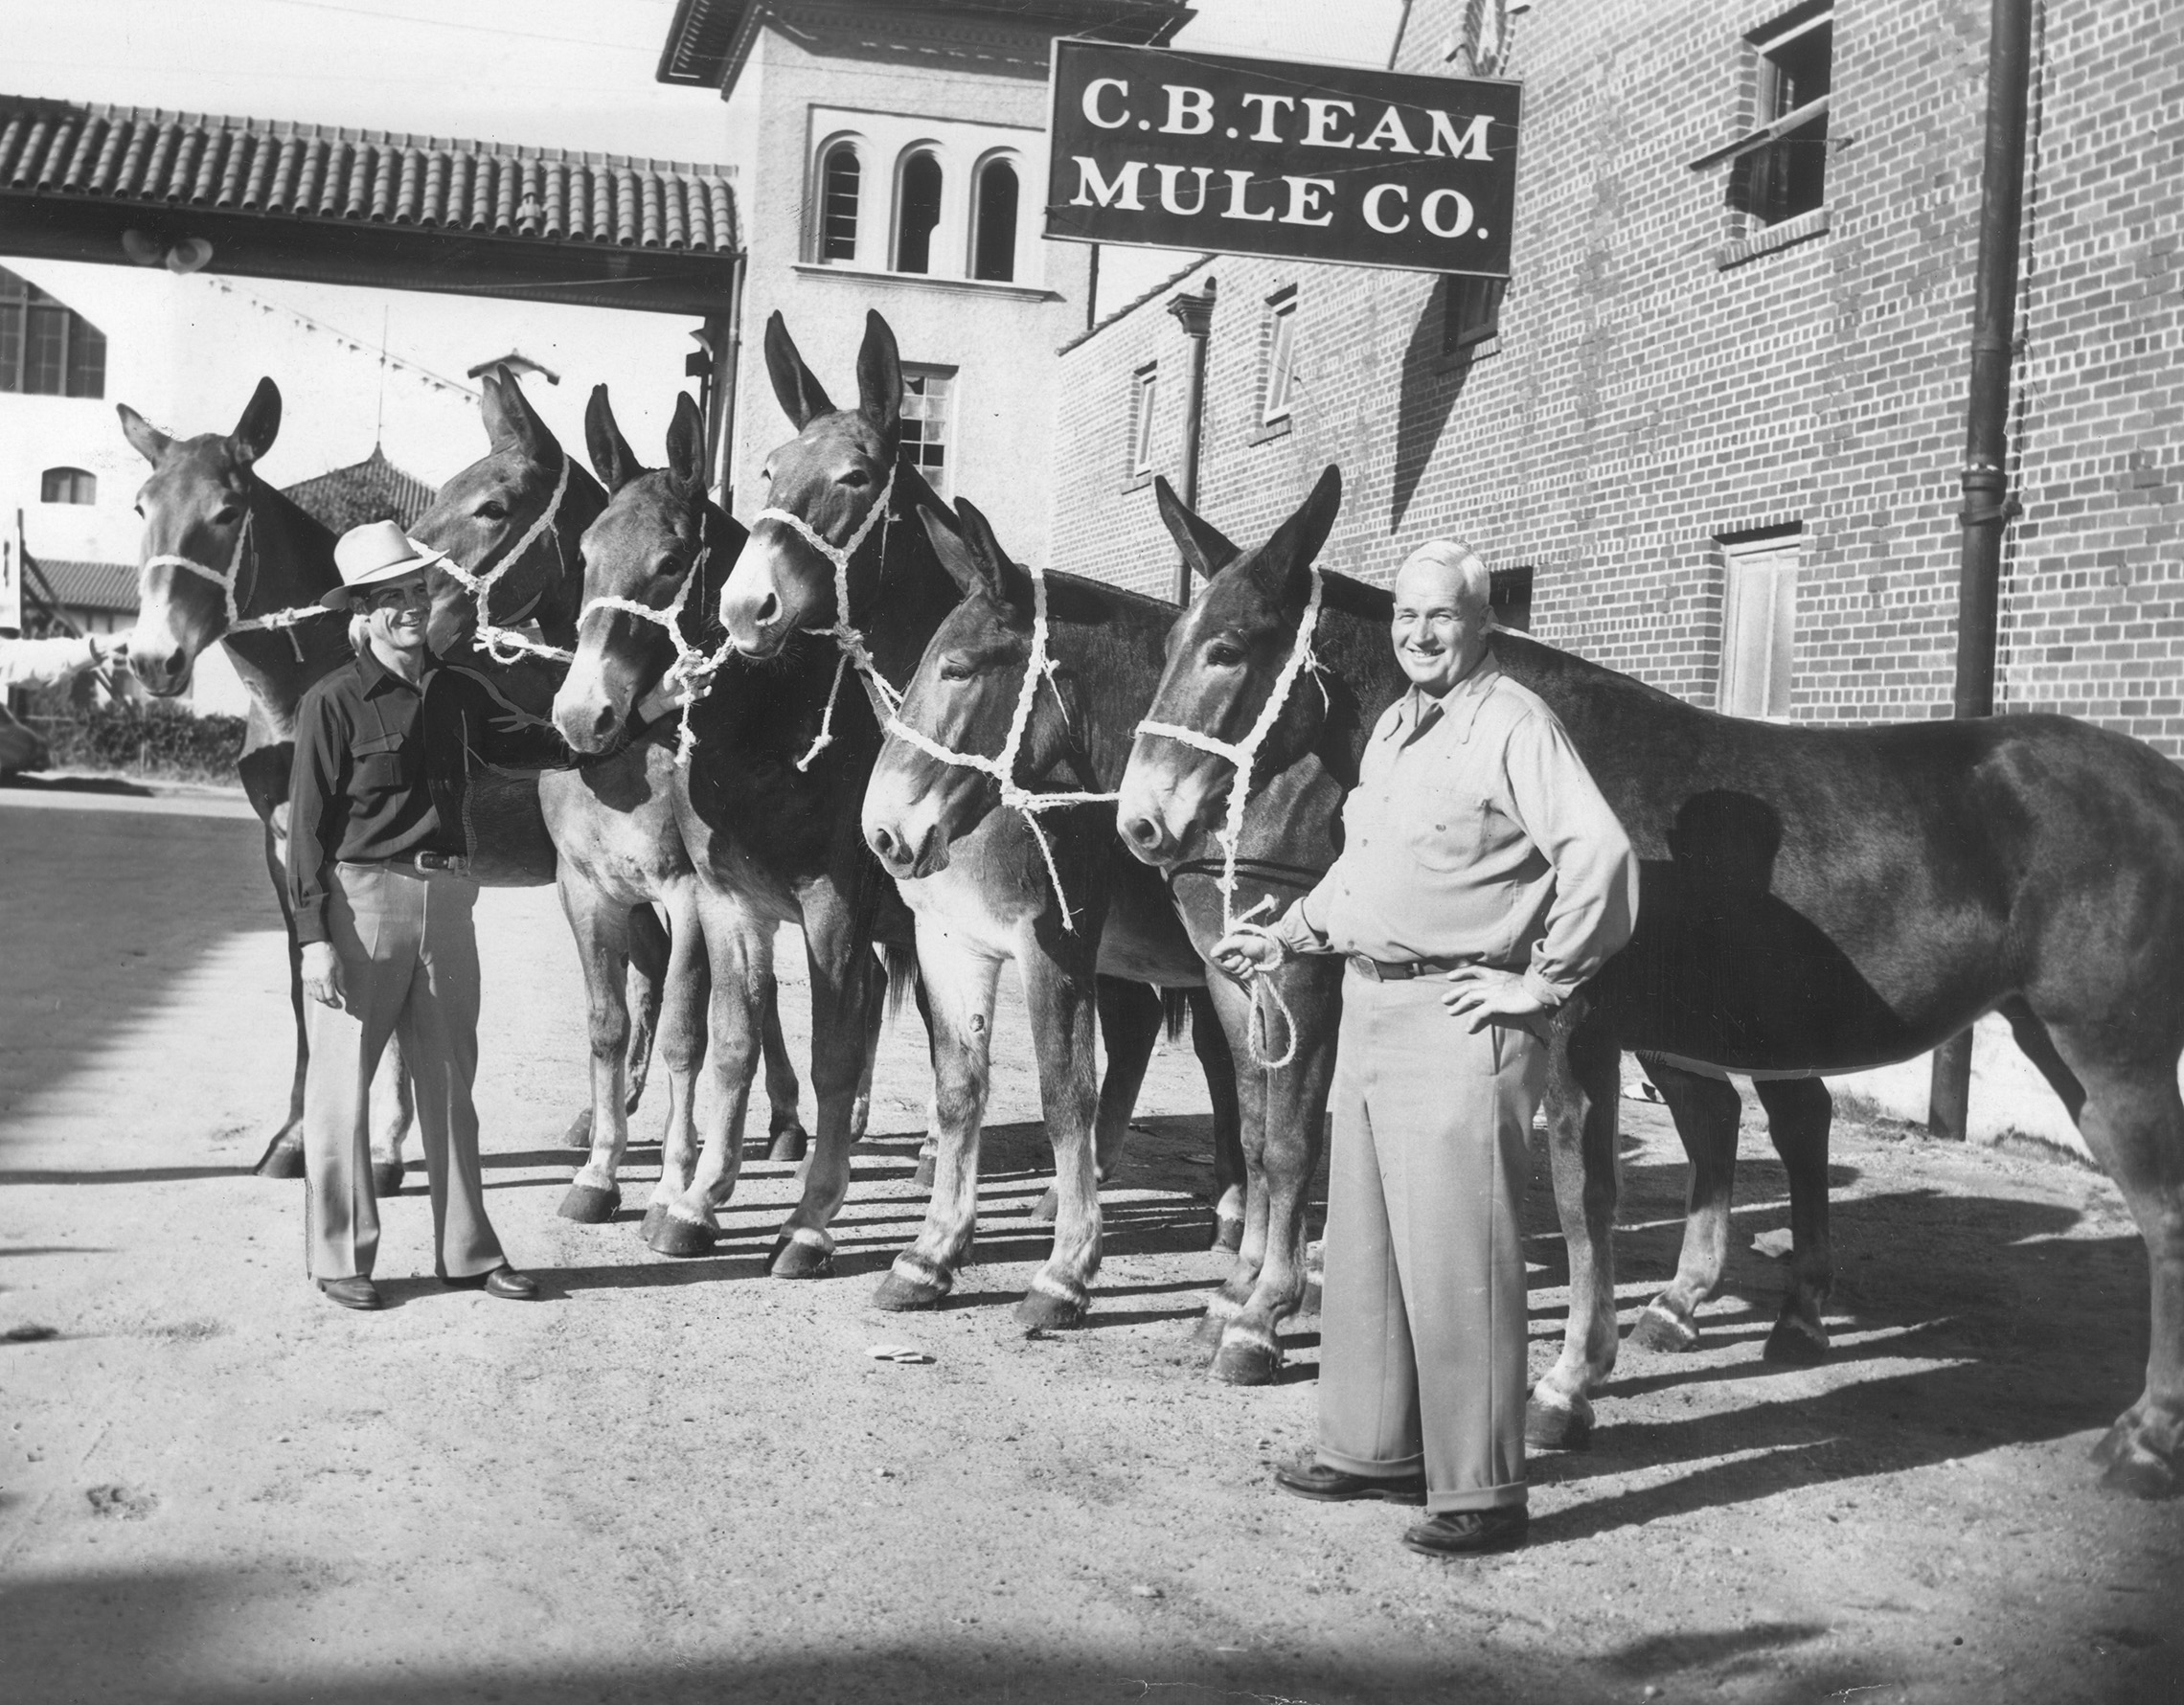 C.B. Team Mule Co. in Mule Alley, Fort Worth Stockyards, Lester Hilton and Russel W. Crane, oct 21 1946.jpg